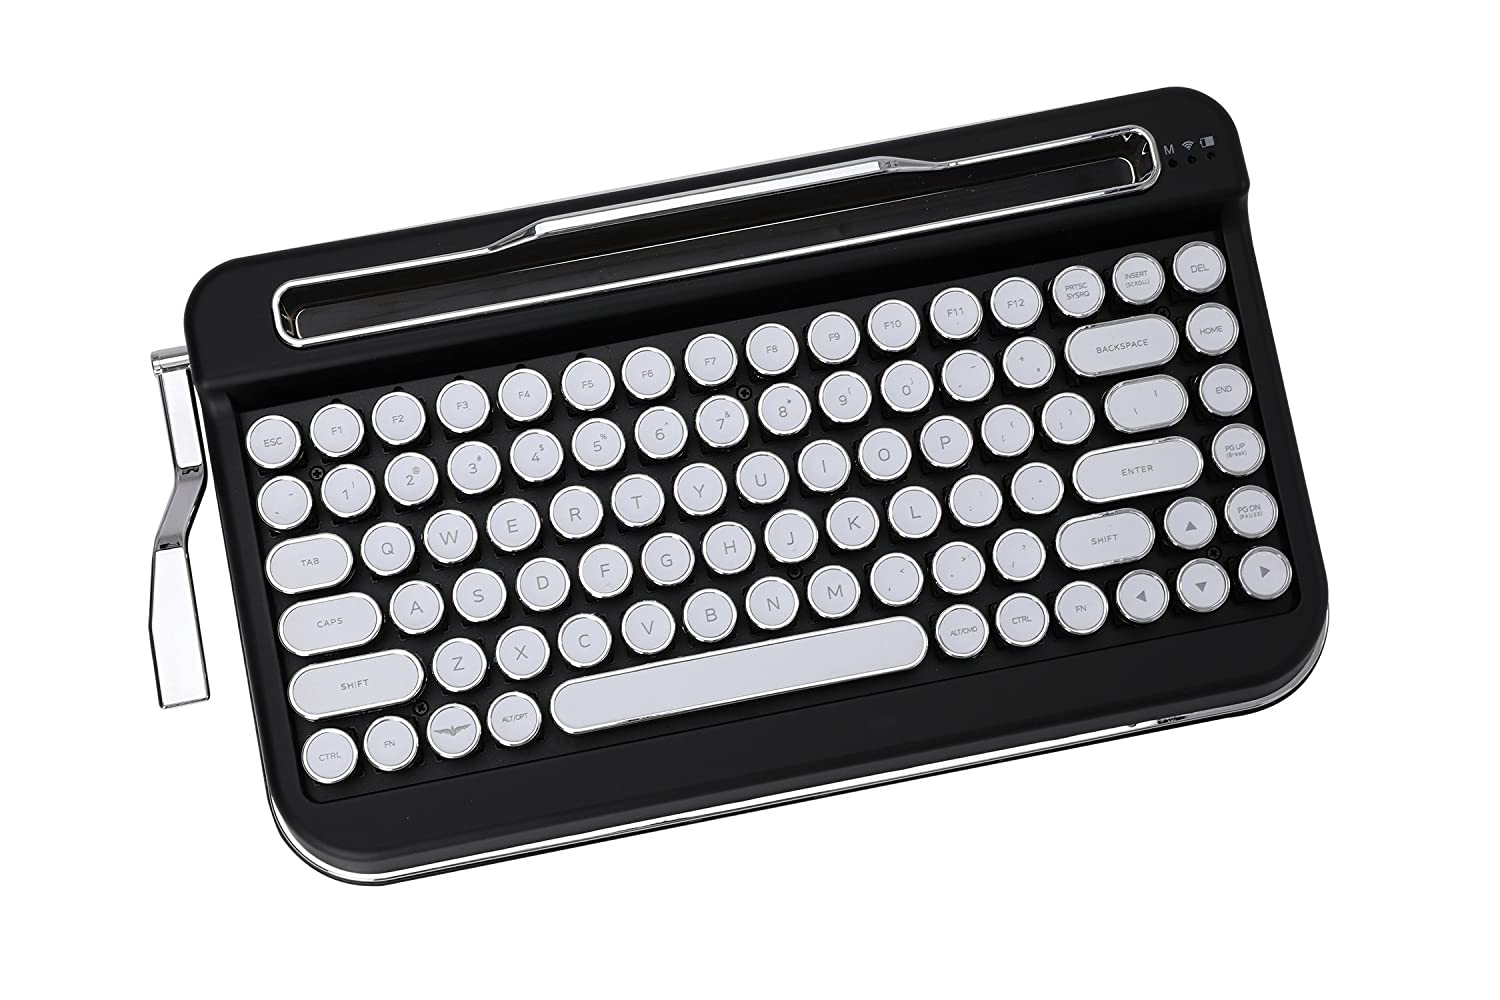 Amazon.com: Penna Bluetooth Keyboard with White Chrome Keycap(US Language) (Switch-Cherry Mx Brown, Matte Black): Computers & Accessories